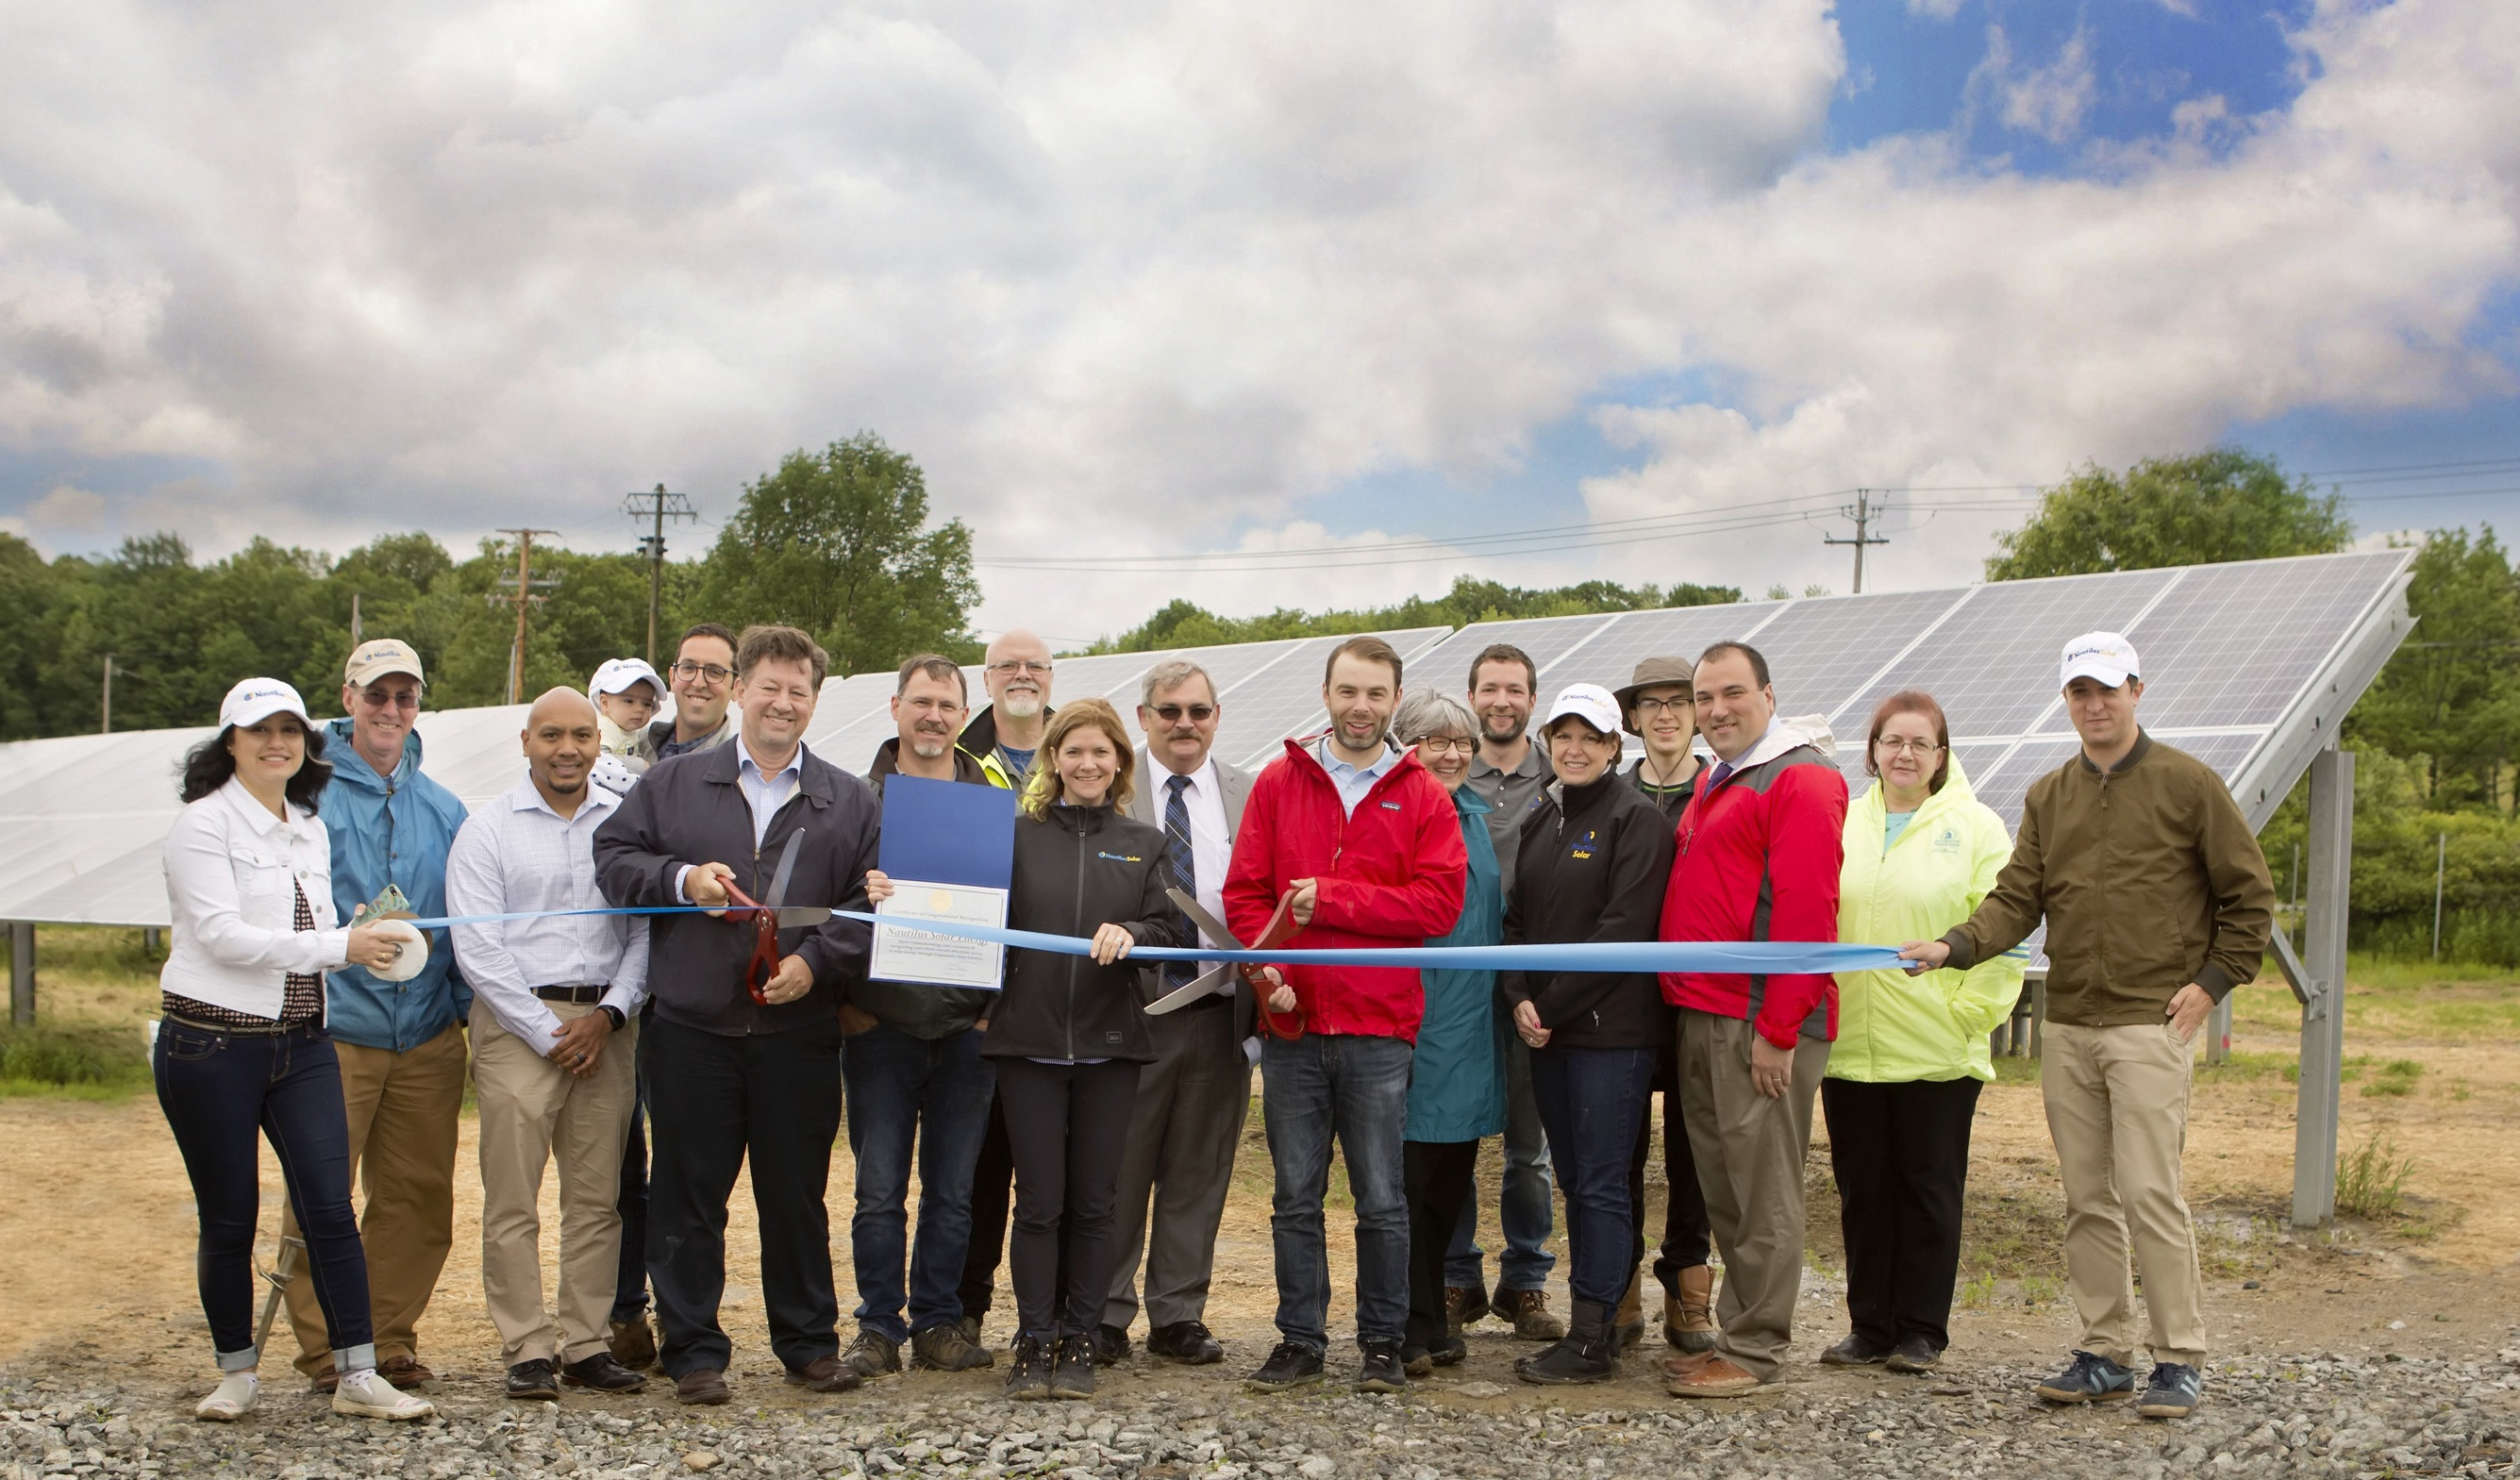 Nautilus Solar Energy Announces Completion Of Its First Community Solar Project In Orange County, New York